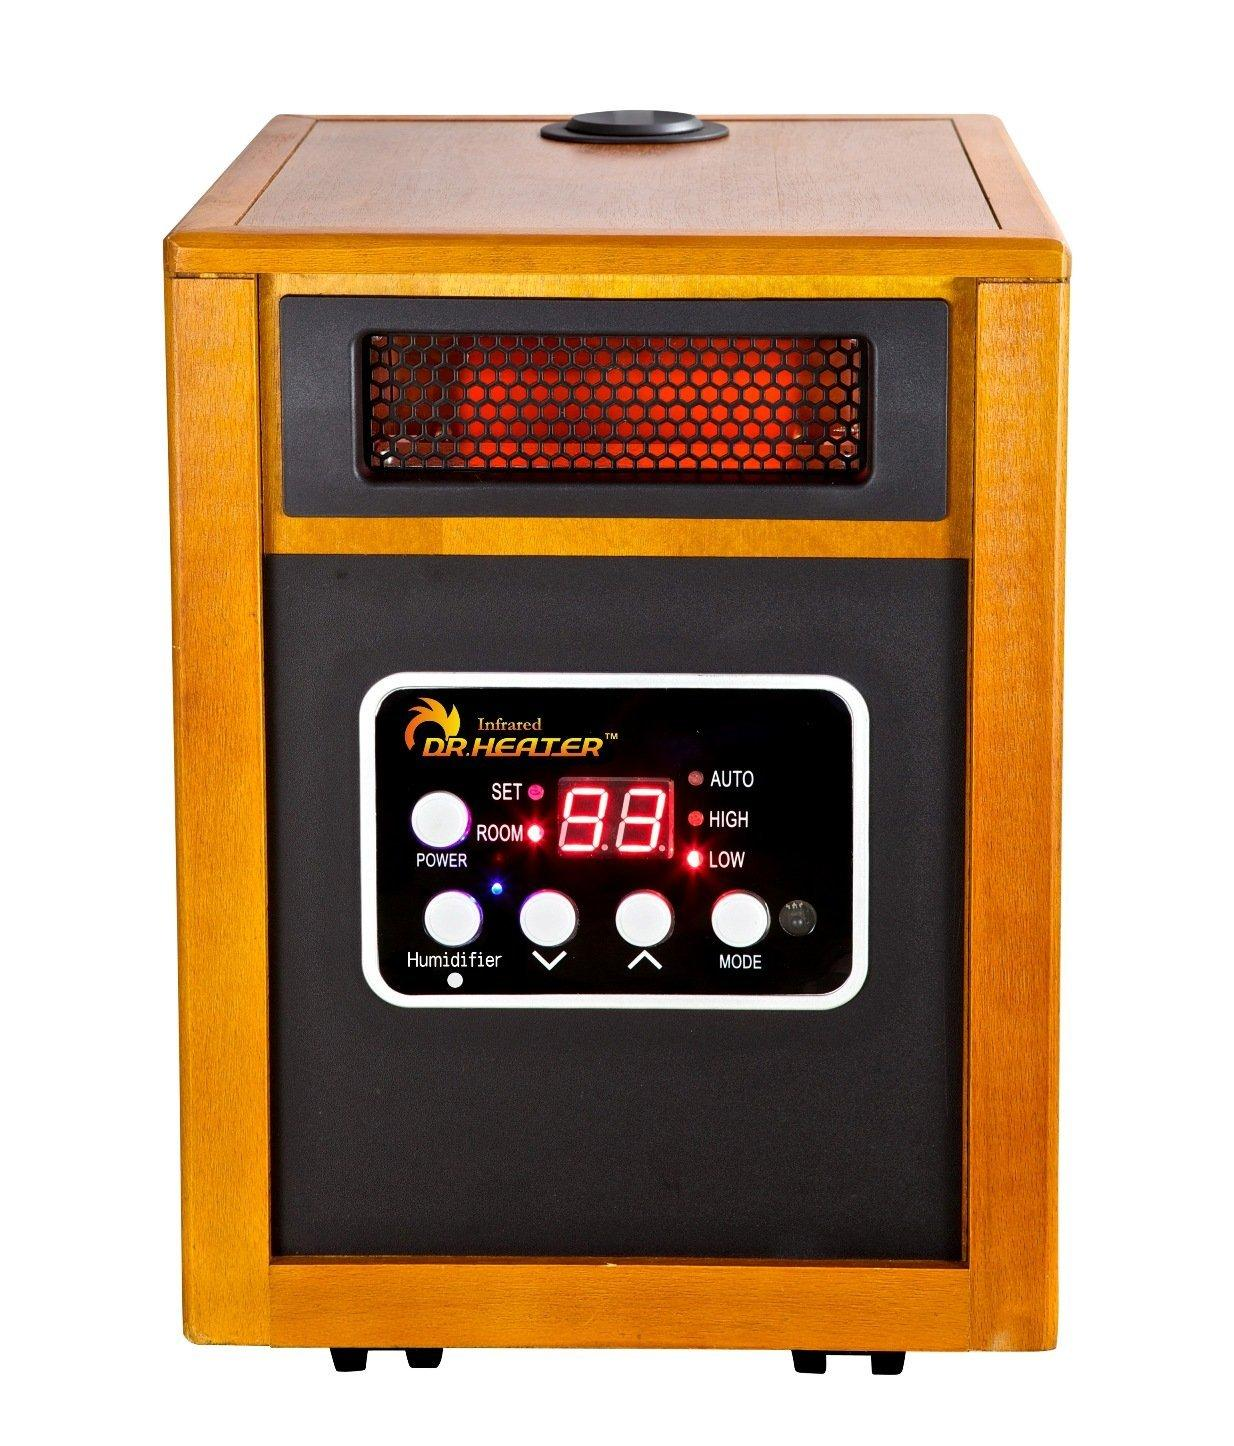 amazon com dr infrared heater portable space heater with